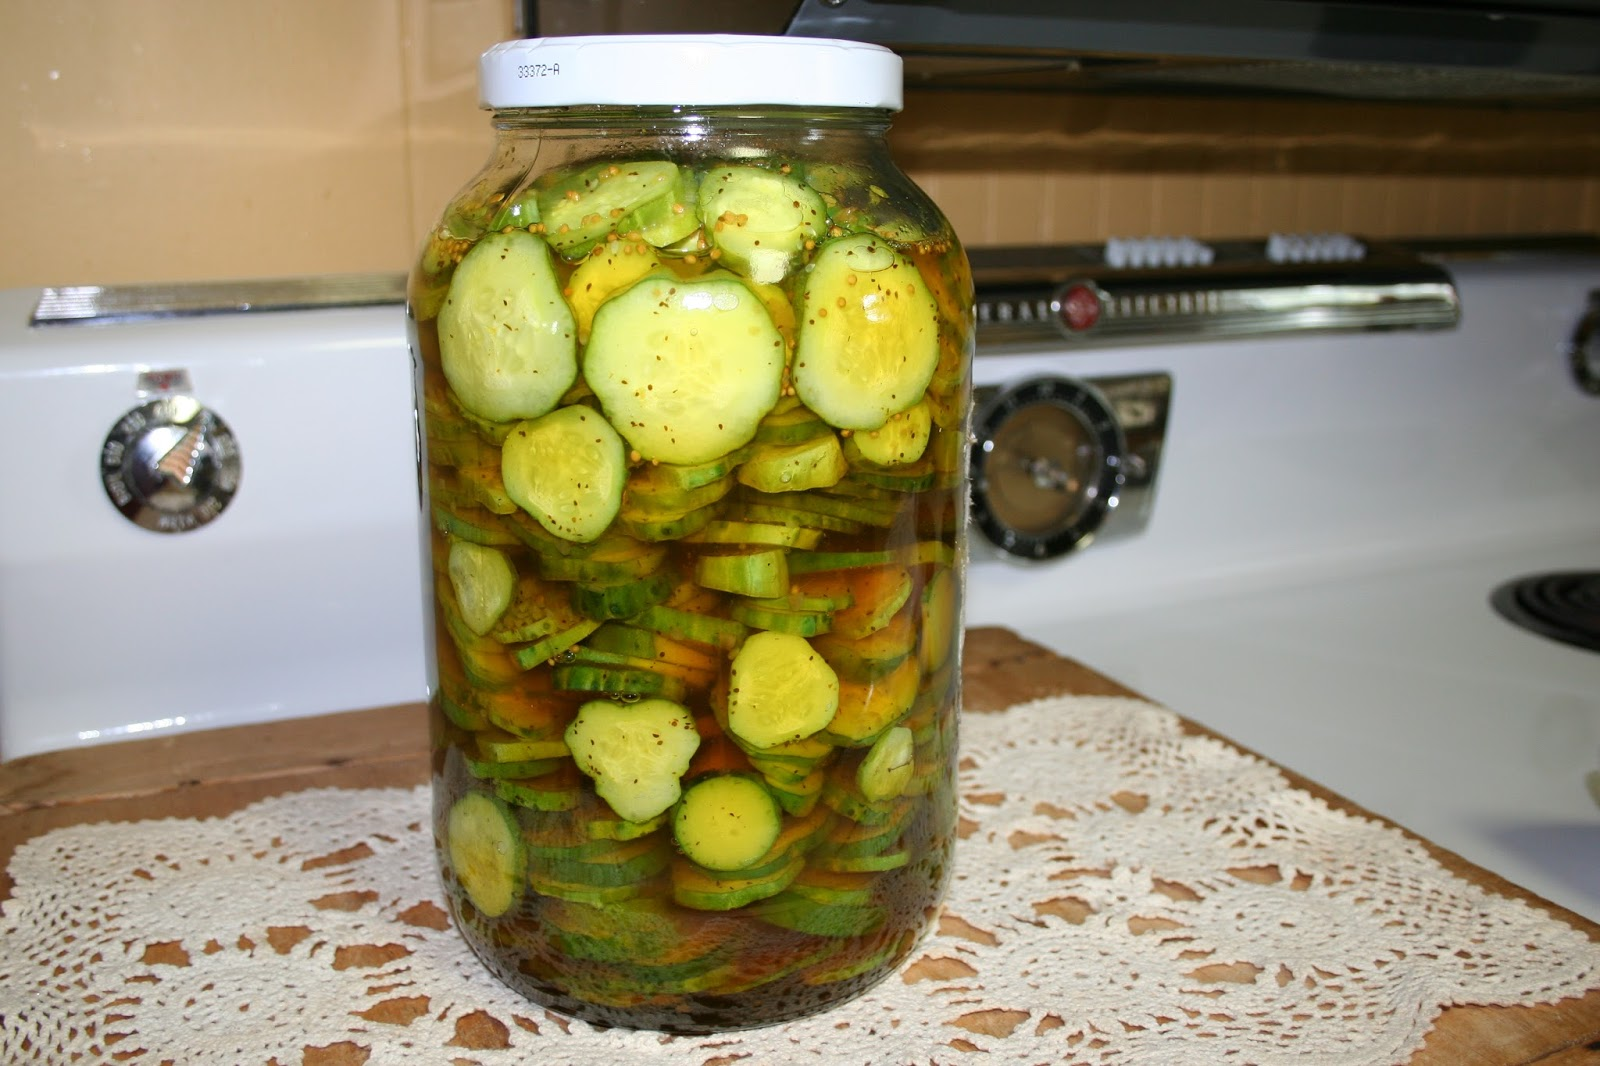 ... scratch poultry: Easy Refrigerator Pickles - Bread and Butter pickles